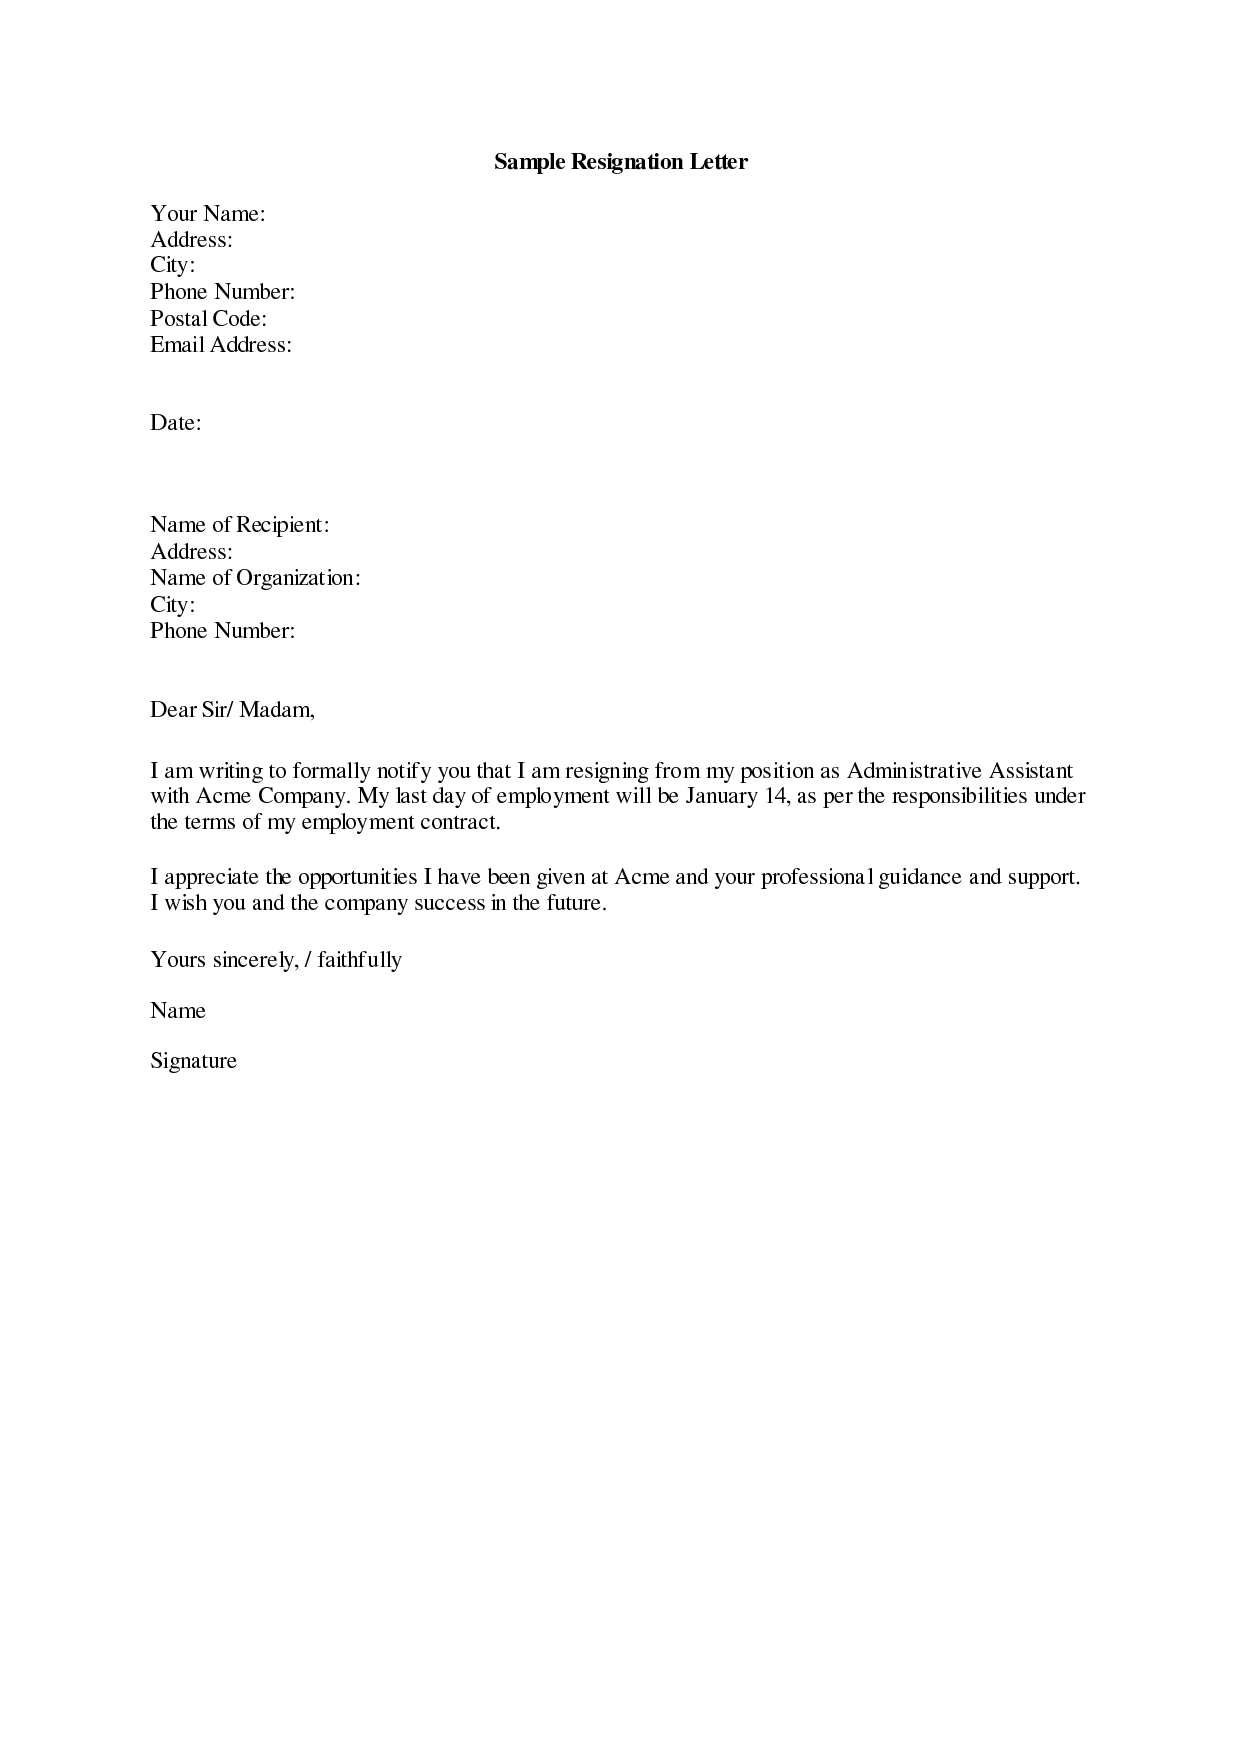 Resignation letter sample 19 letter of resignation ankit resignation letter sample 19 letter of resignation spiritdancerdesigns Images